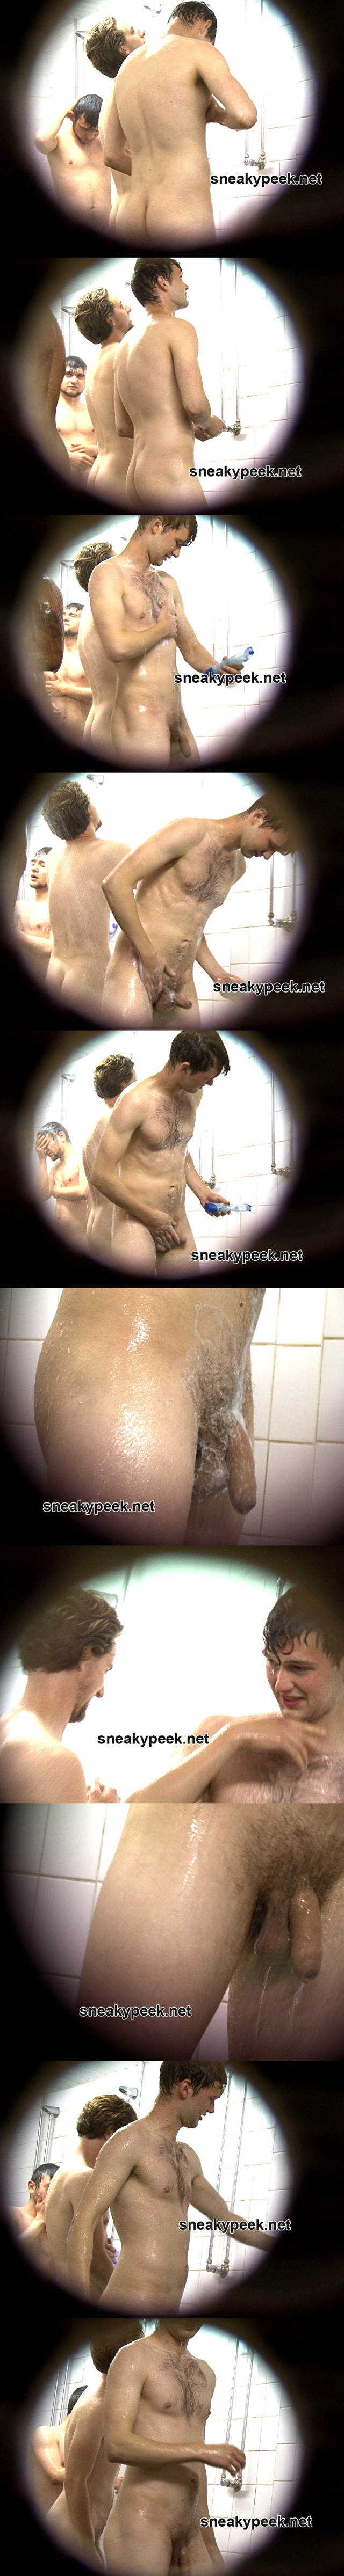 unaware naked guys shower spycam